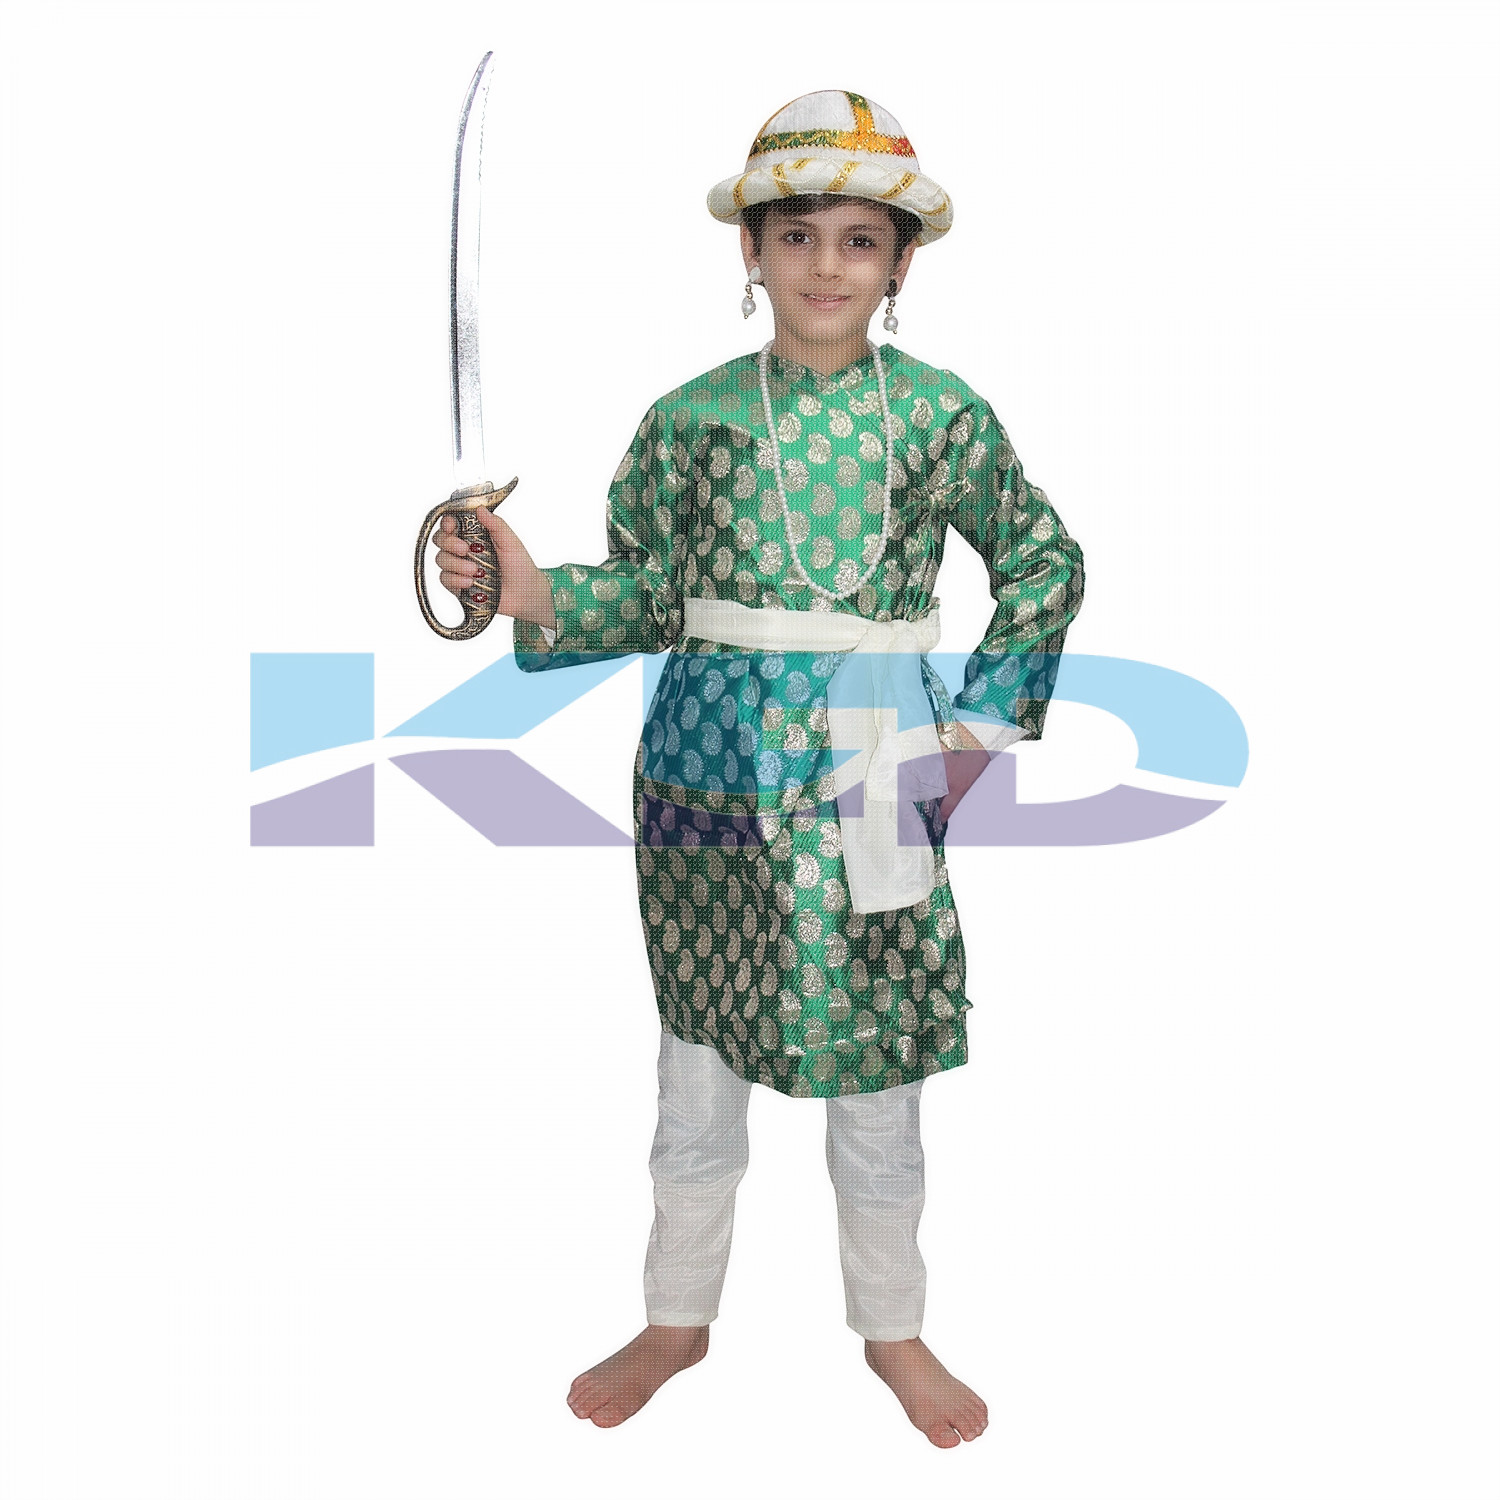 Tipu Sultan Green Costume For Kids,Indian Historical Character Costume For School Annual function/Theme Party/Stage Shows/Competition/Birthday Party Dress